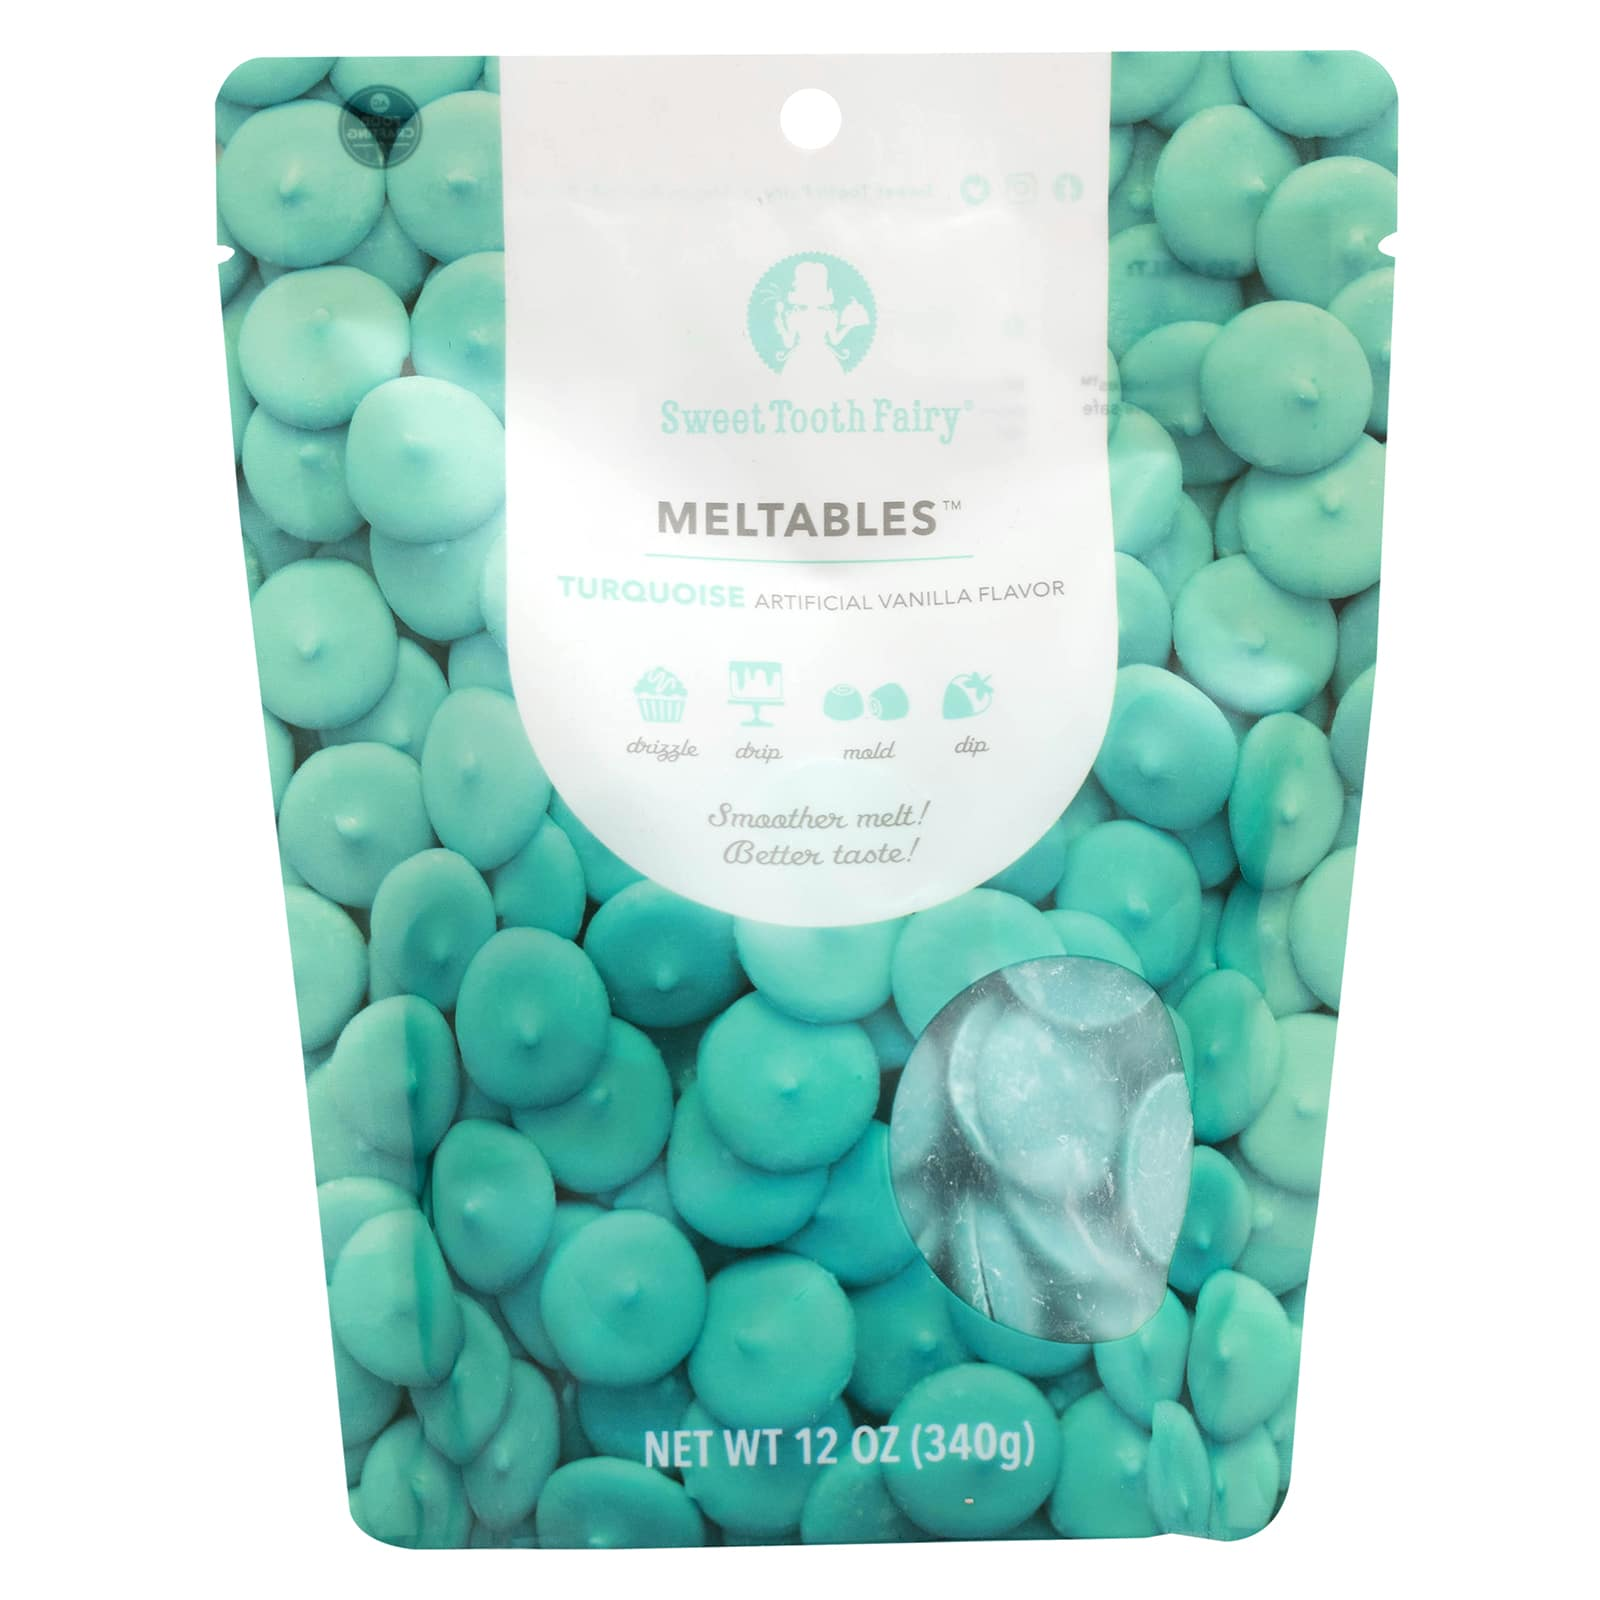 sweet tooth fairy meltables turquoise